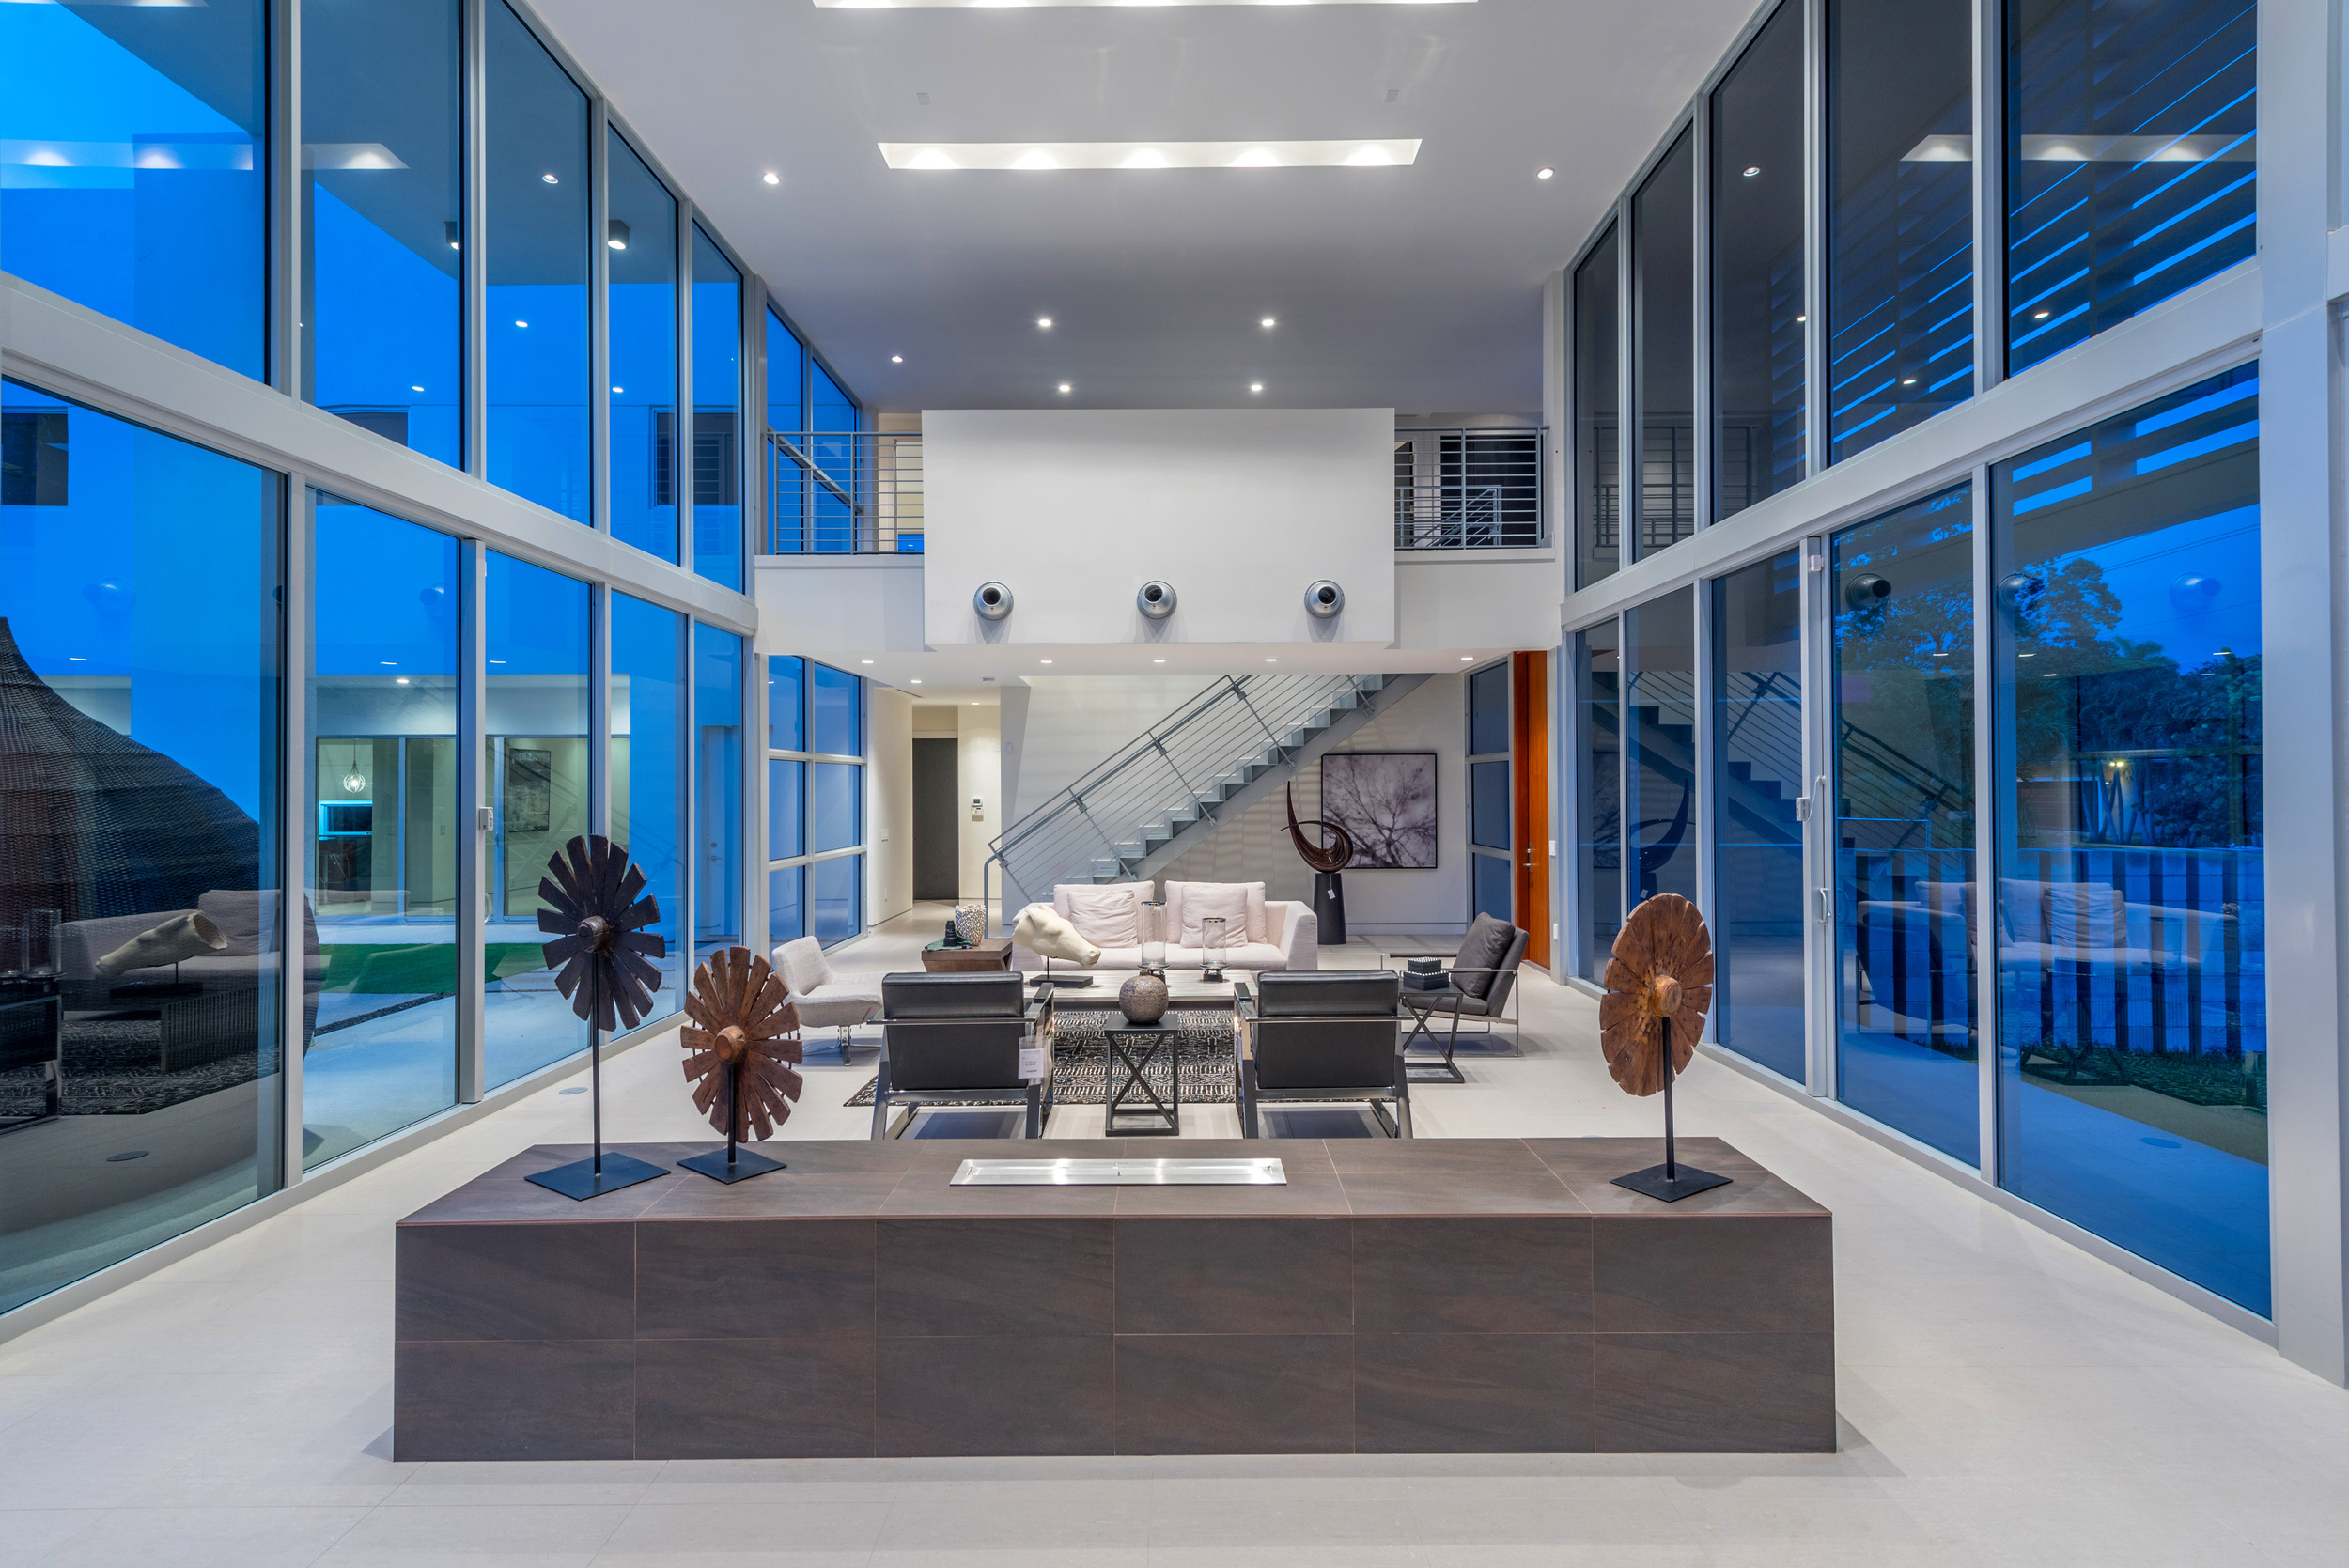 The Setting Homes Plum House Miami Florida Interior Living Room Night TARIS Real Estate